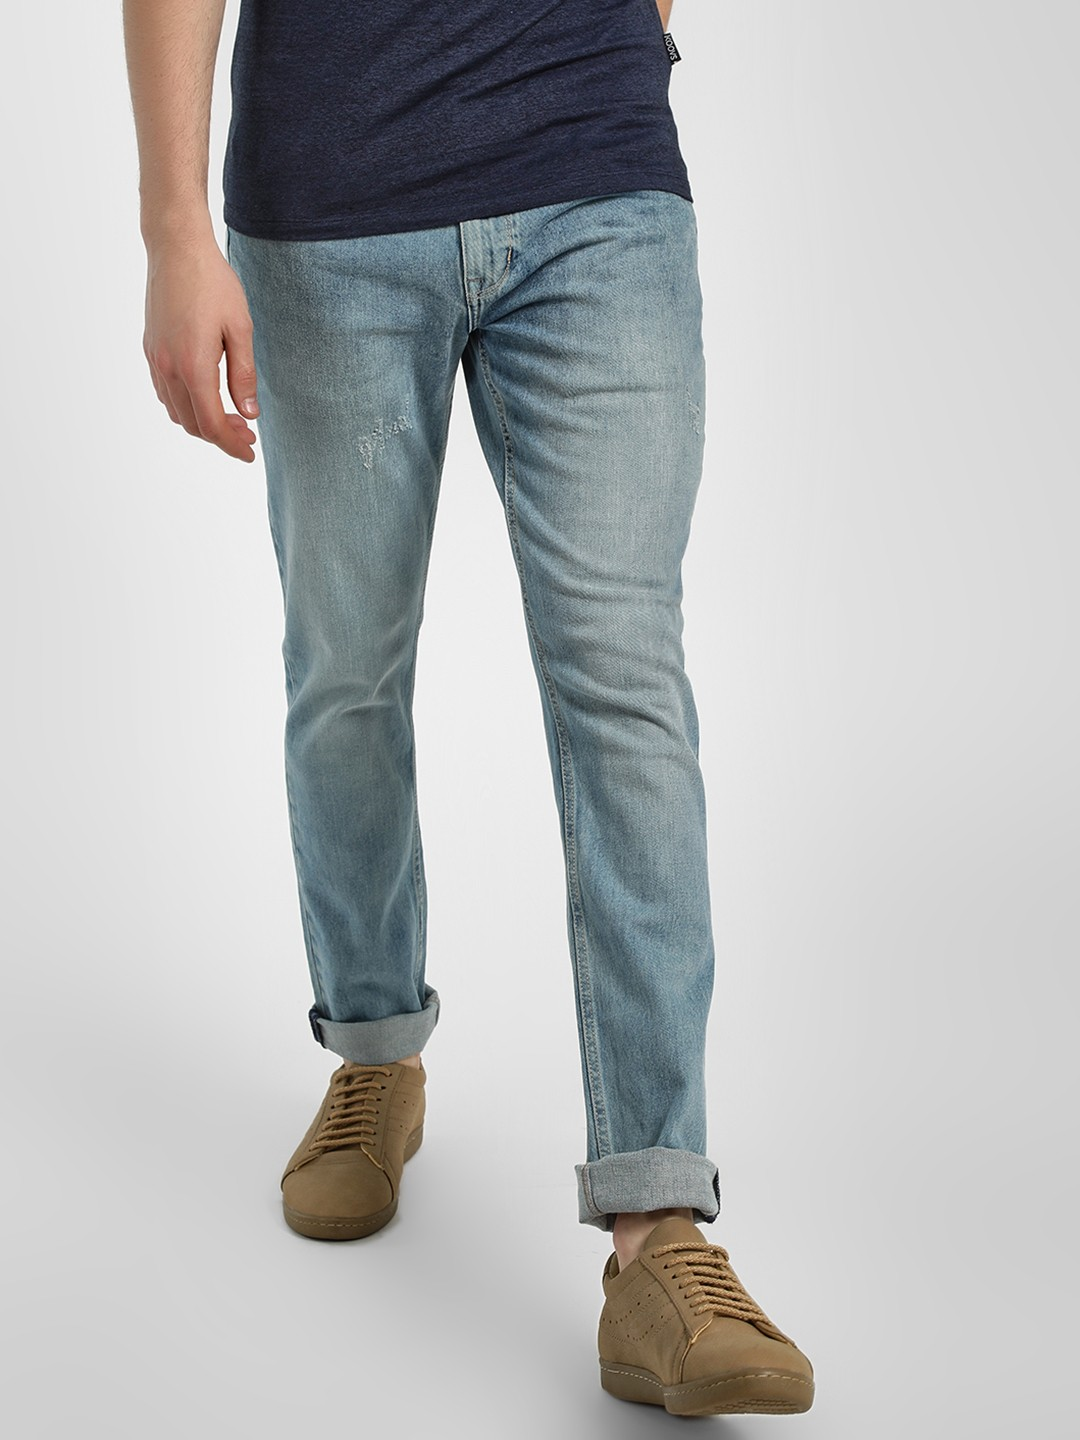 Lee Cooper MID GREY Basic Washed Jeans 1